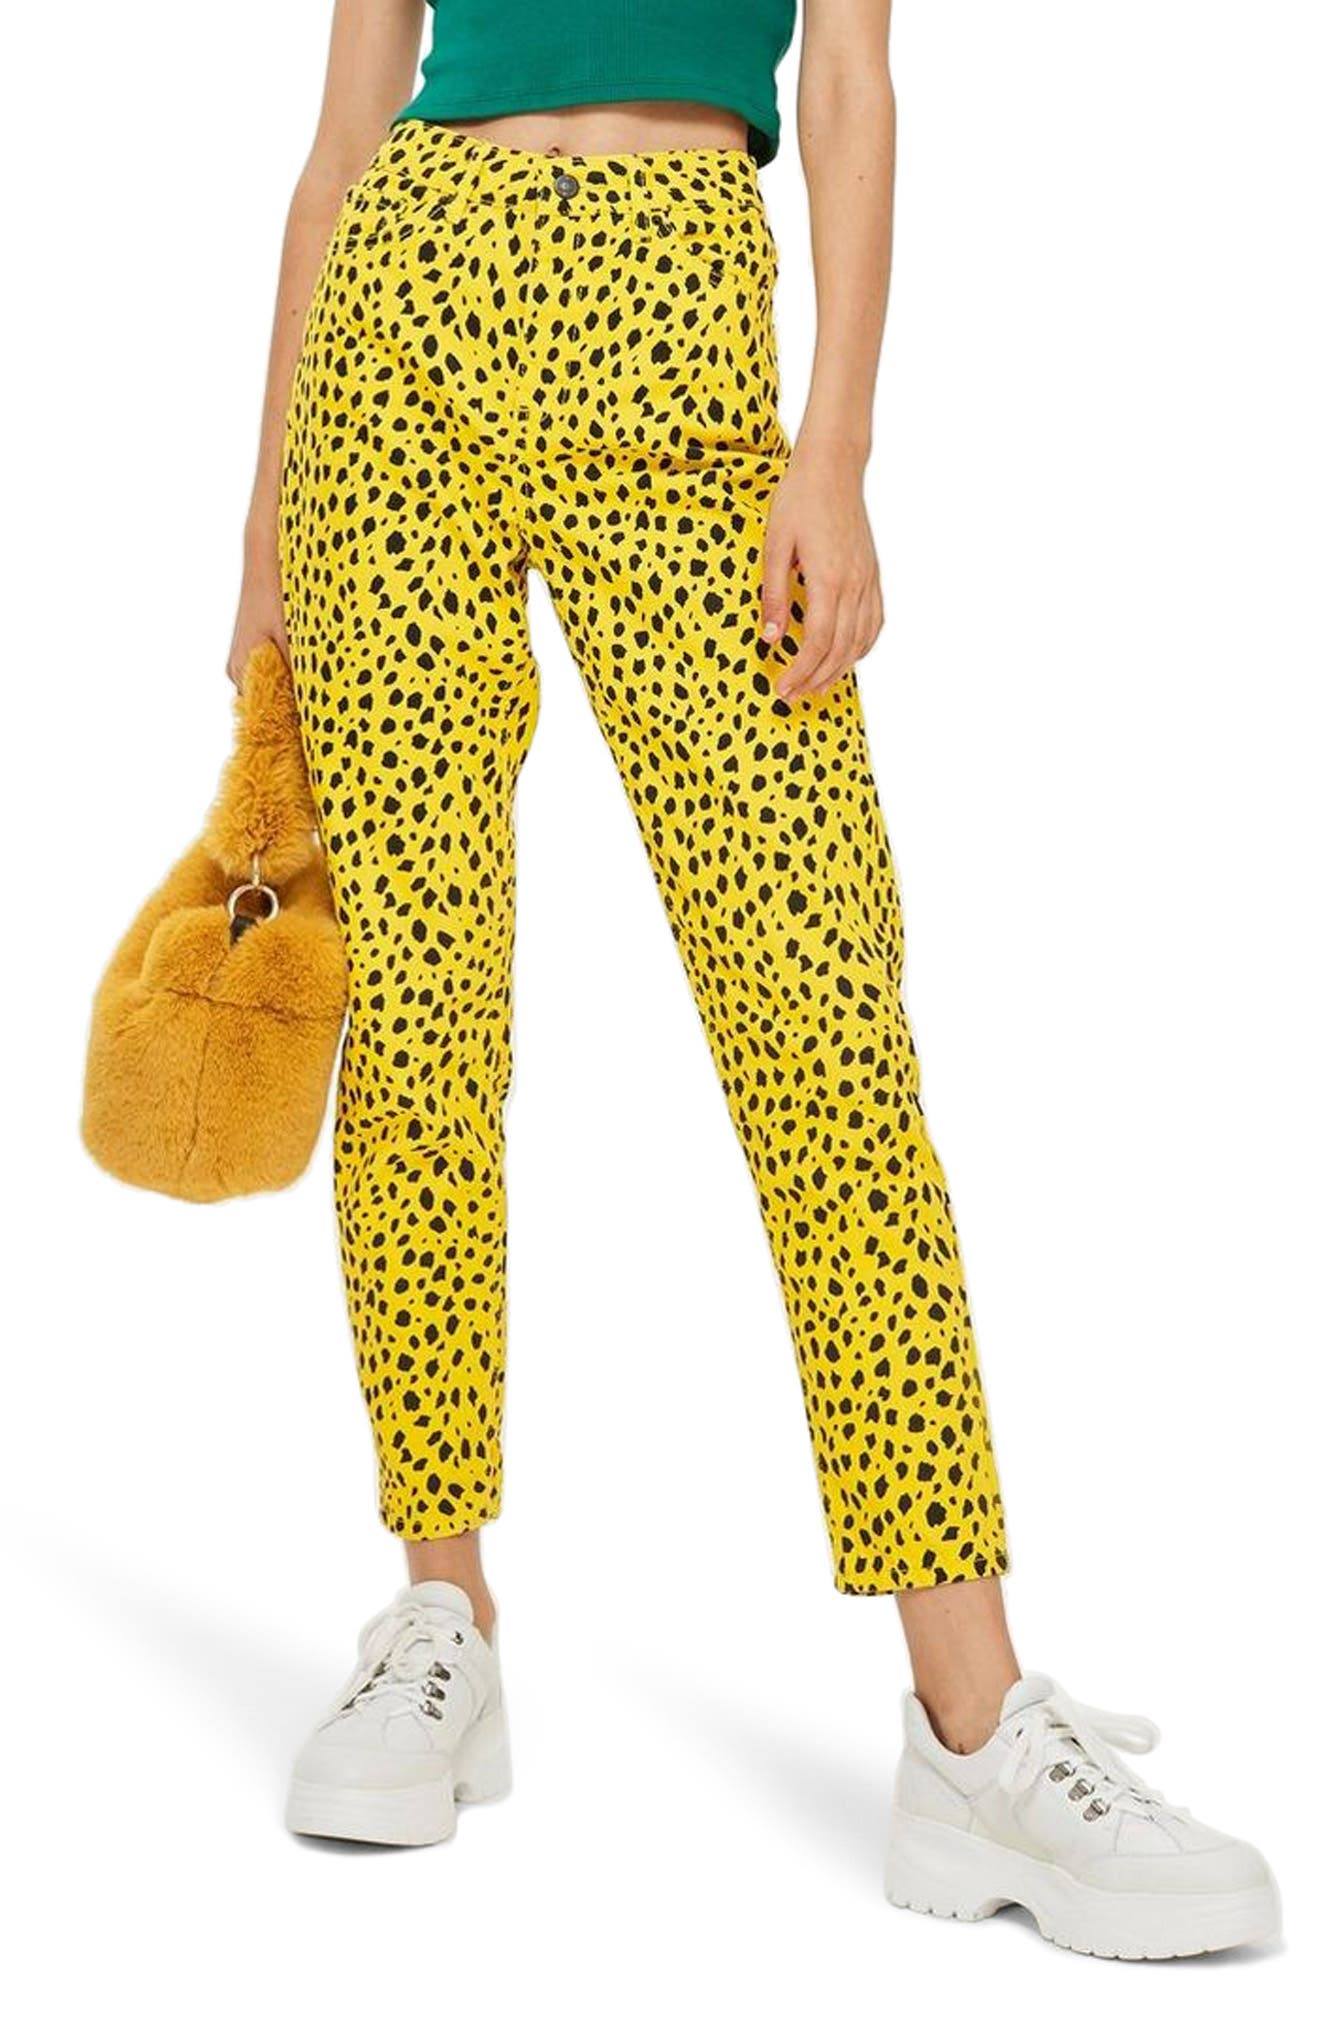 Leopard Mom Jeans,                             Main thumbnail 1, color,                             YELLOW